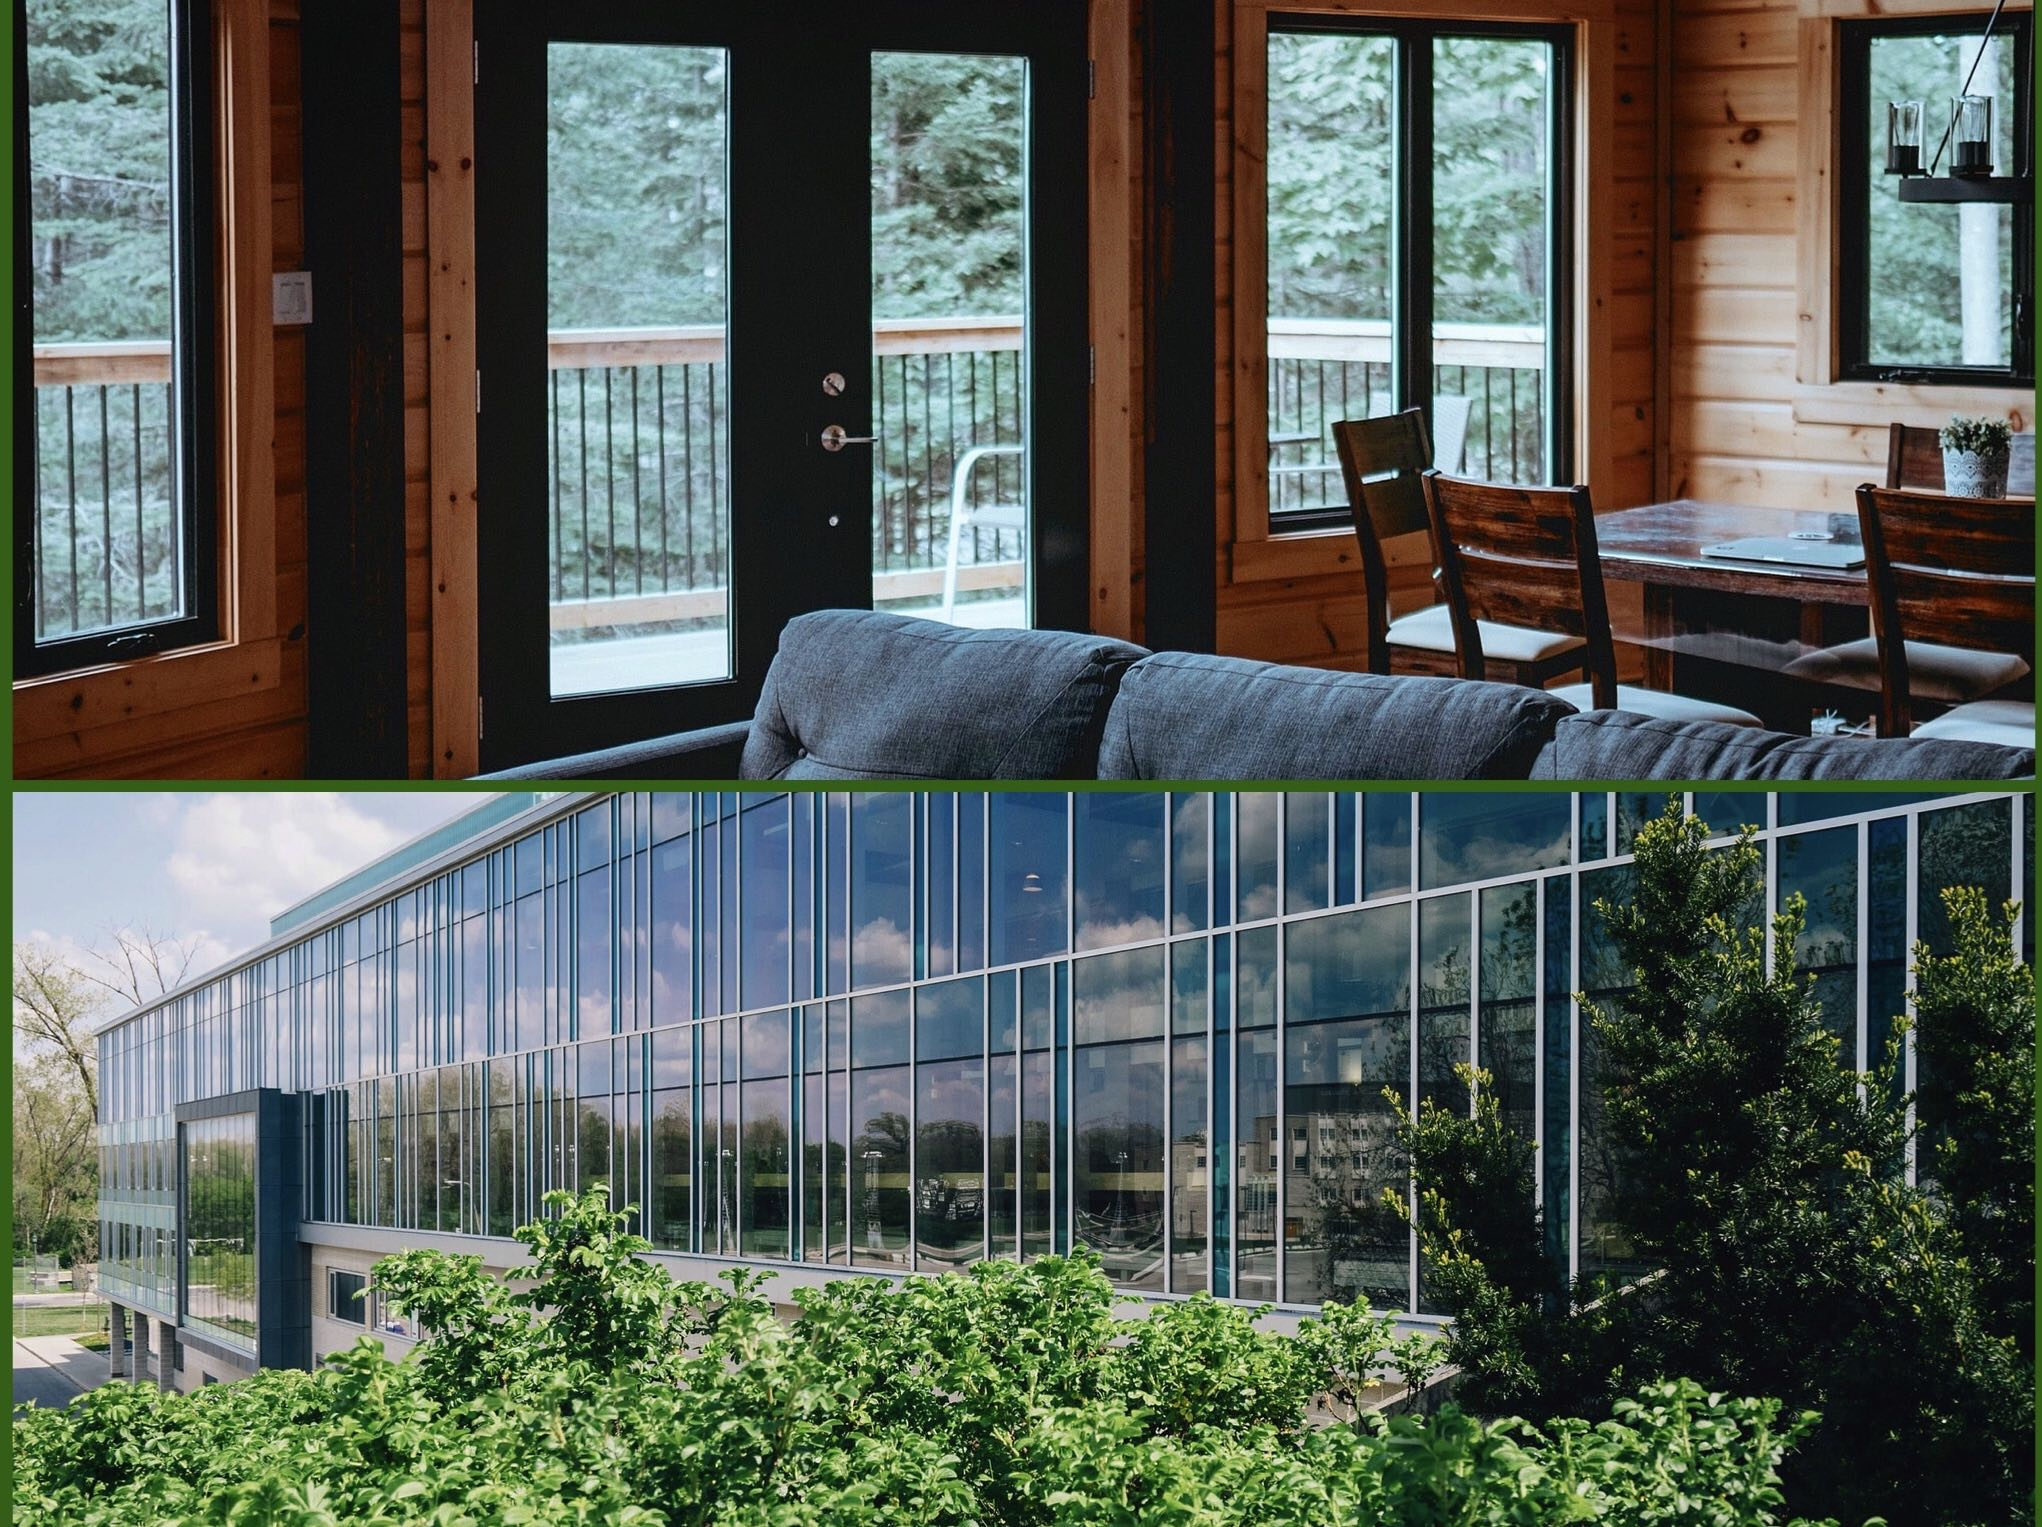 Seeing Green: Solar Control Window Films Save Money & Conserve Energy - Home and Commercial Window Film in Overland Park, Kansas